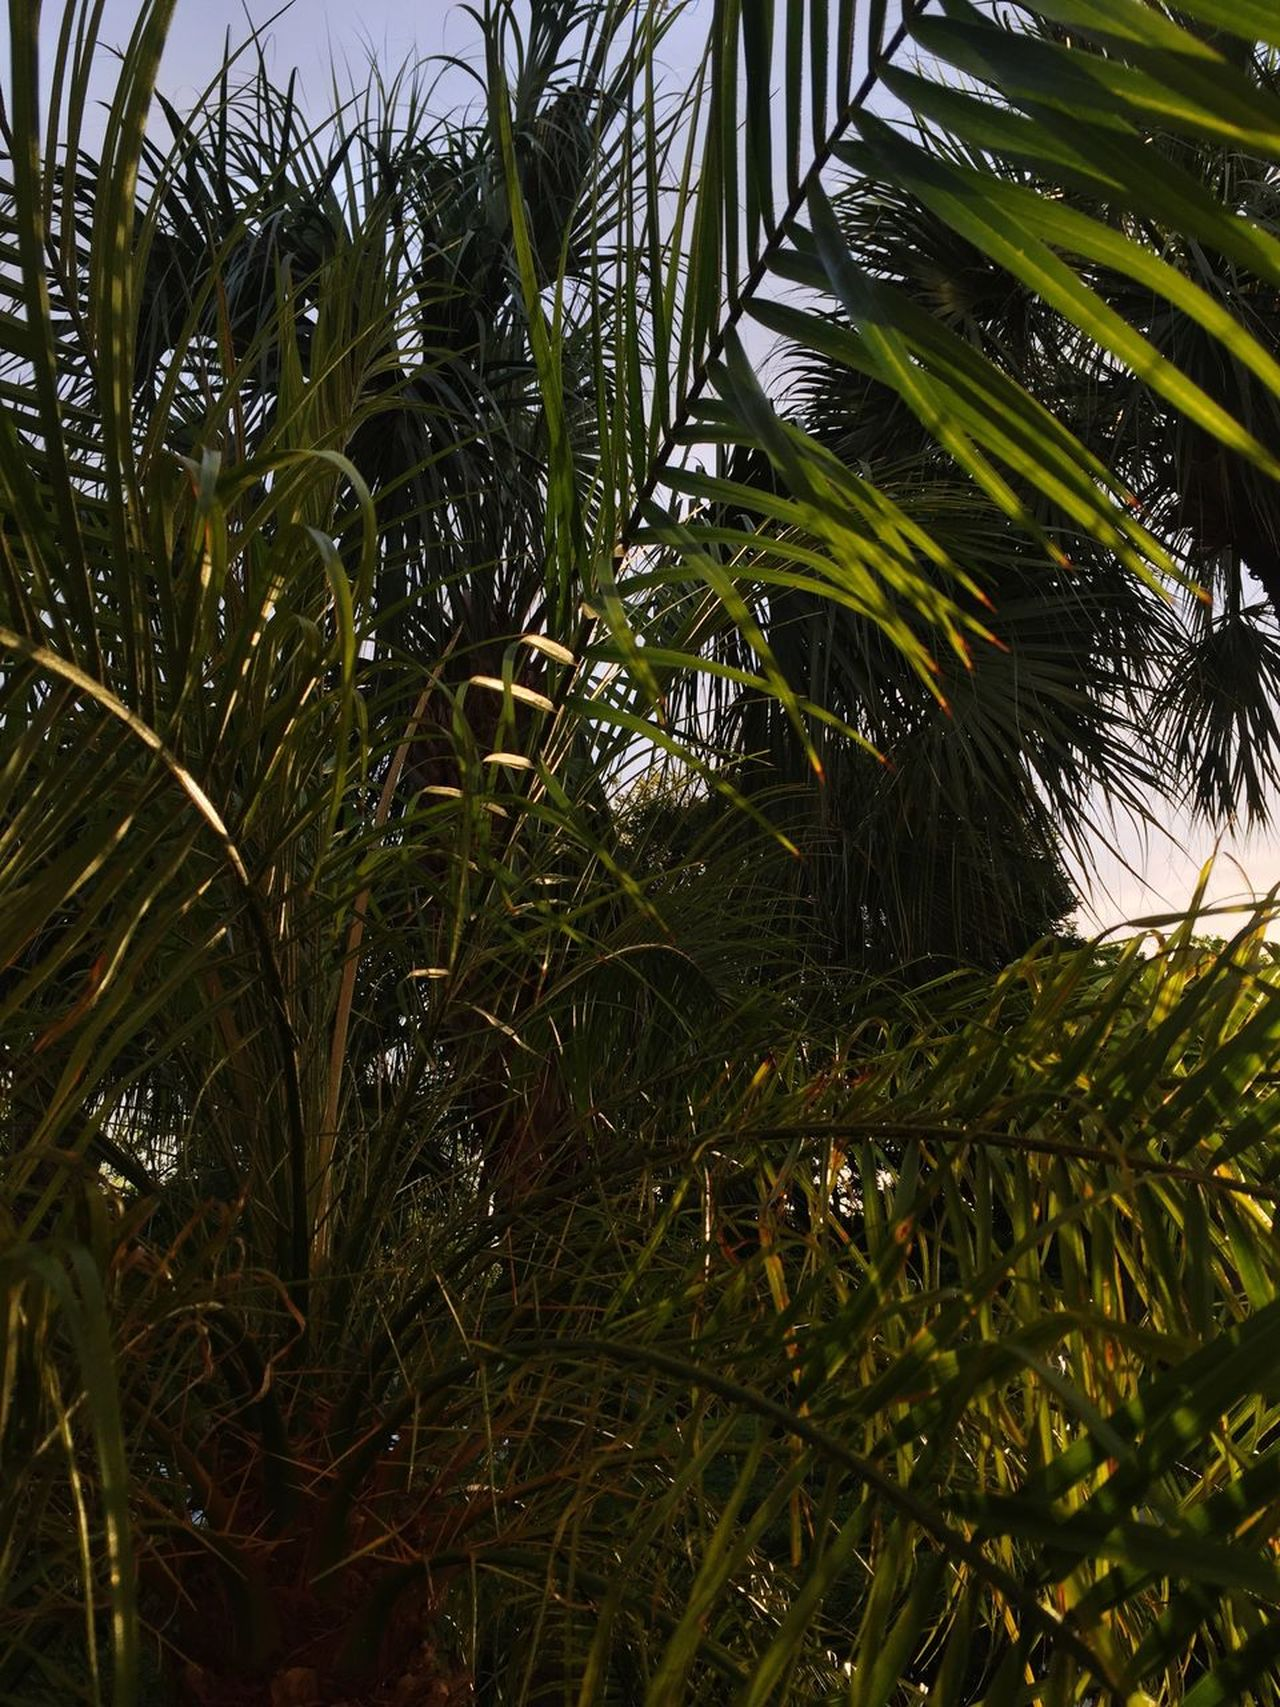 Growth Palm Tree Tree Leaf Nature Green Color Plant No People Agriculture Frond Outdoors Beauty In Nature Day Close-up Freshness The Great Outdoors - 2017 EyeEm Awards EyeEmNewHere